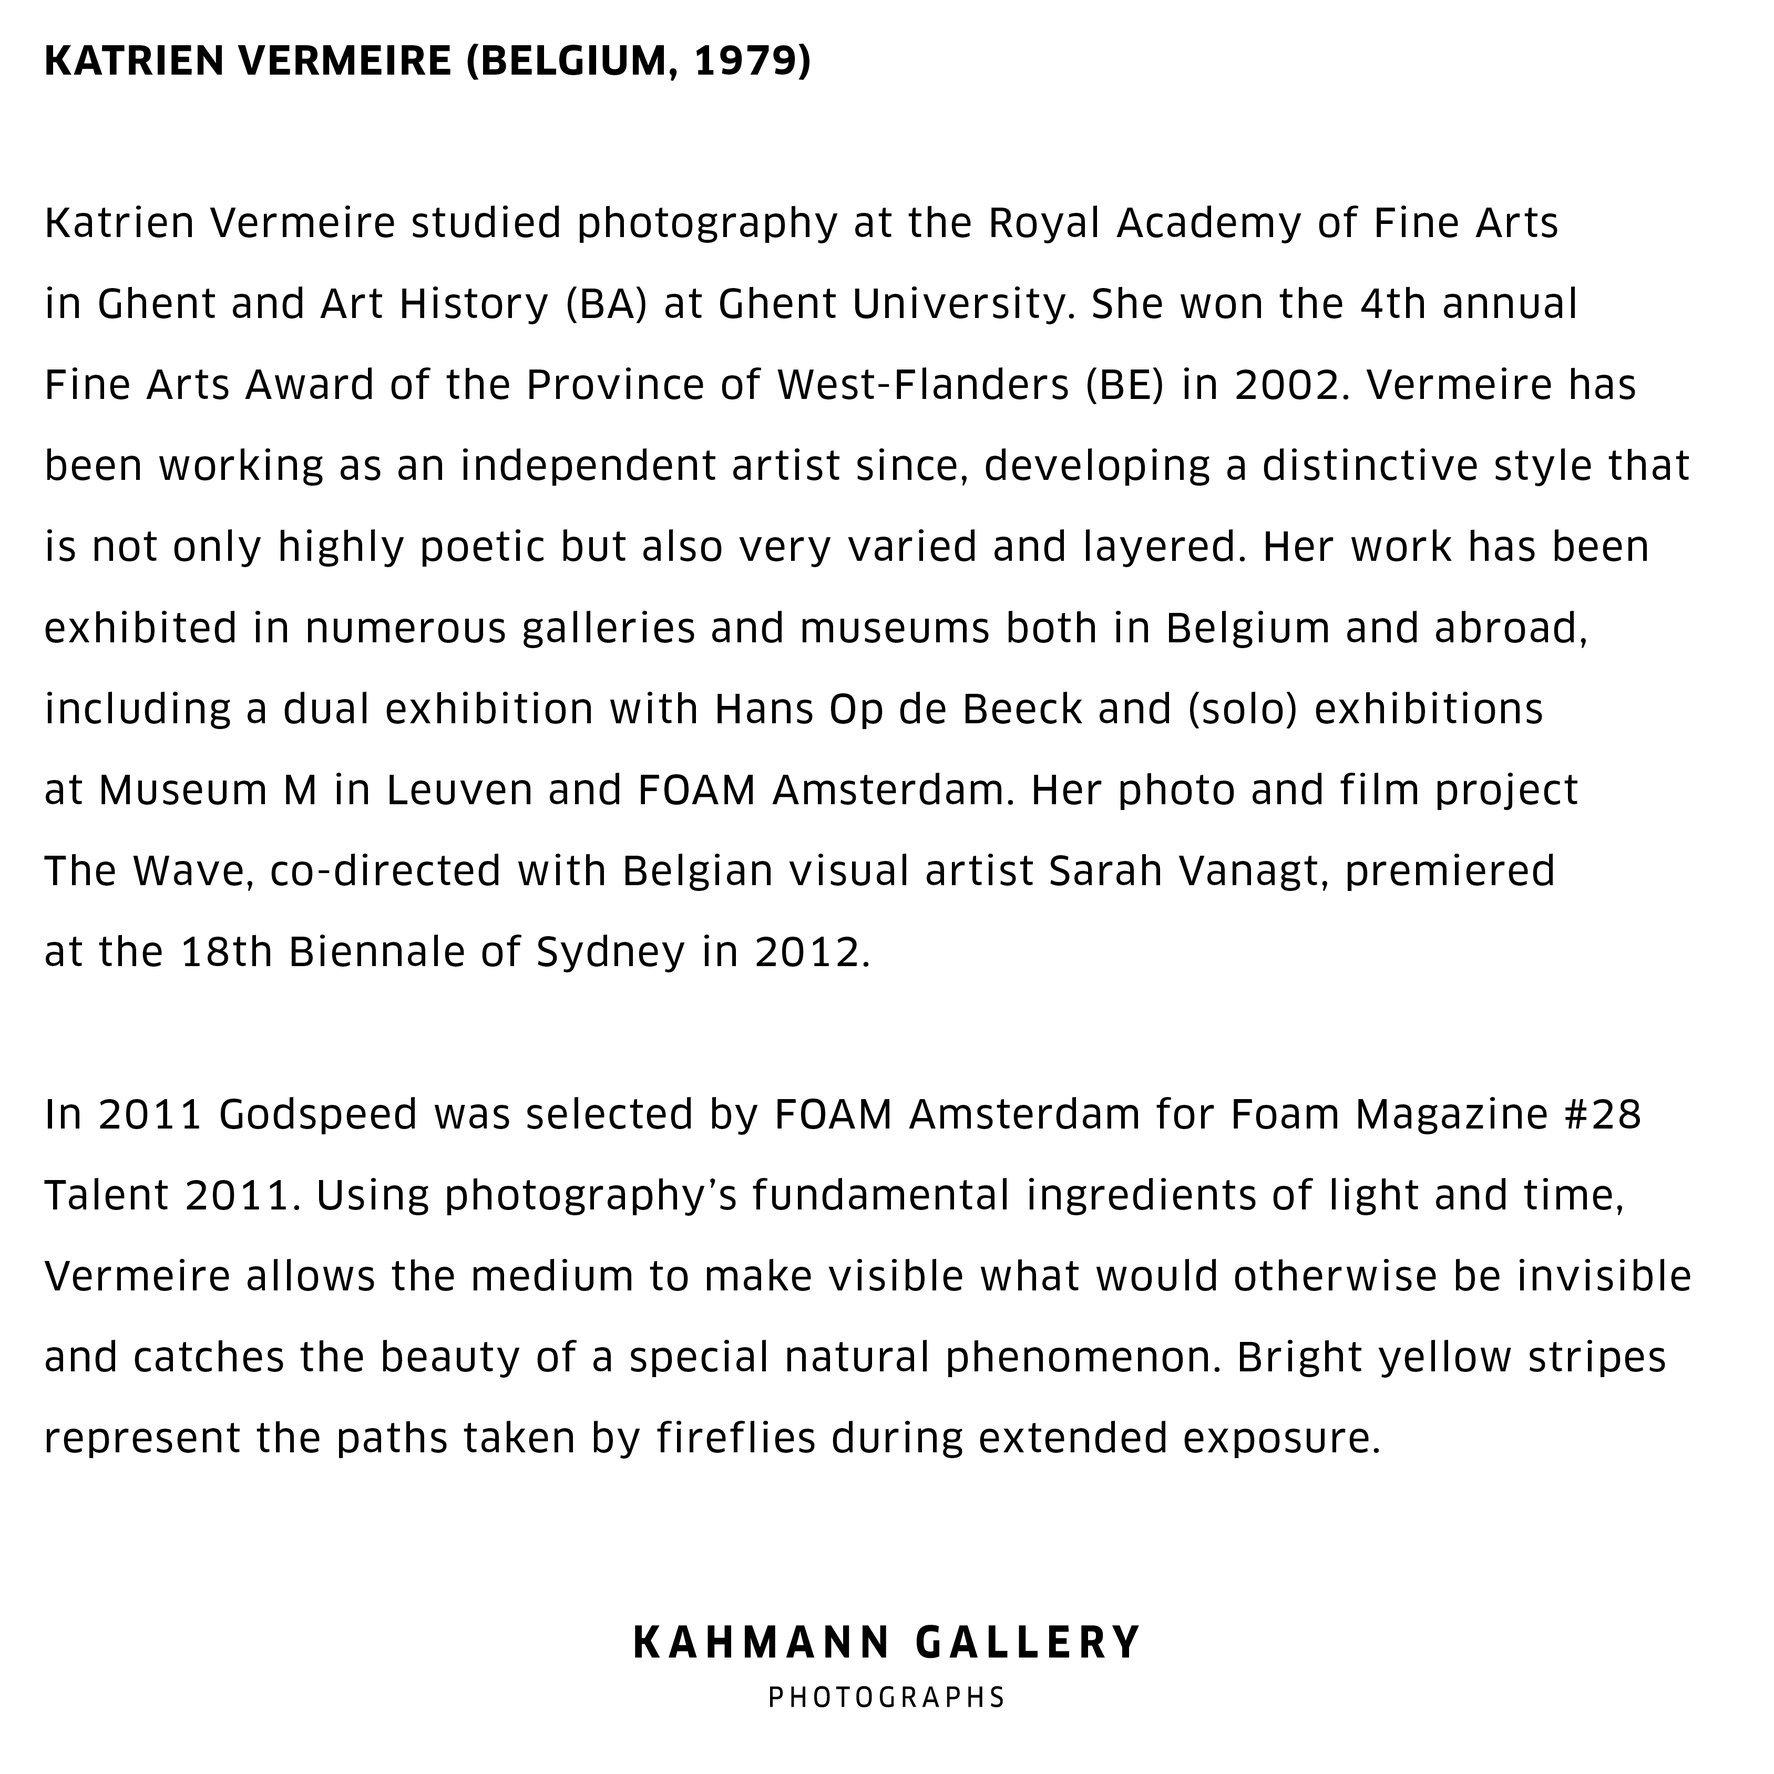 KG Viewbook - Artists_26.jpg